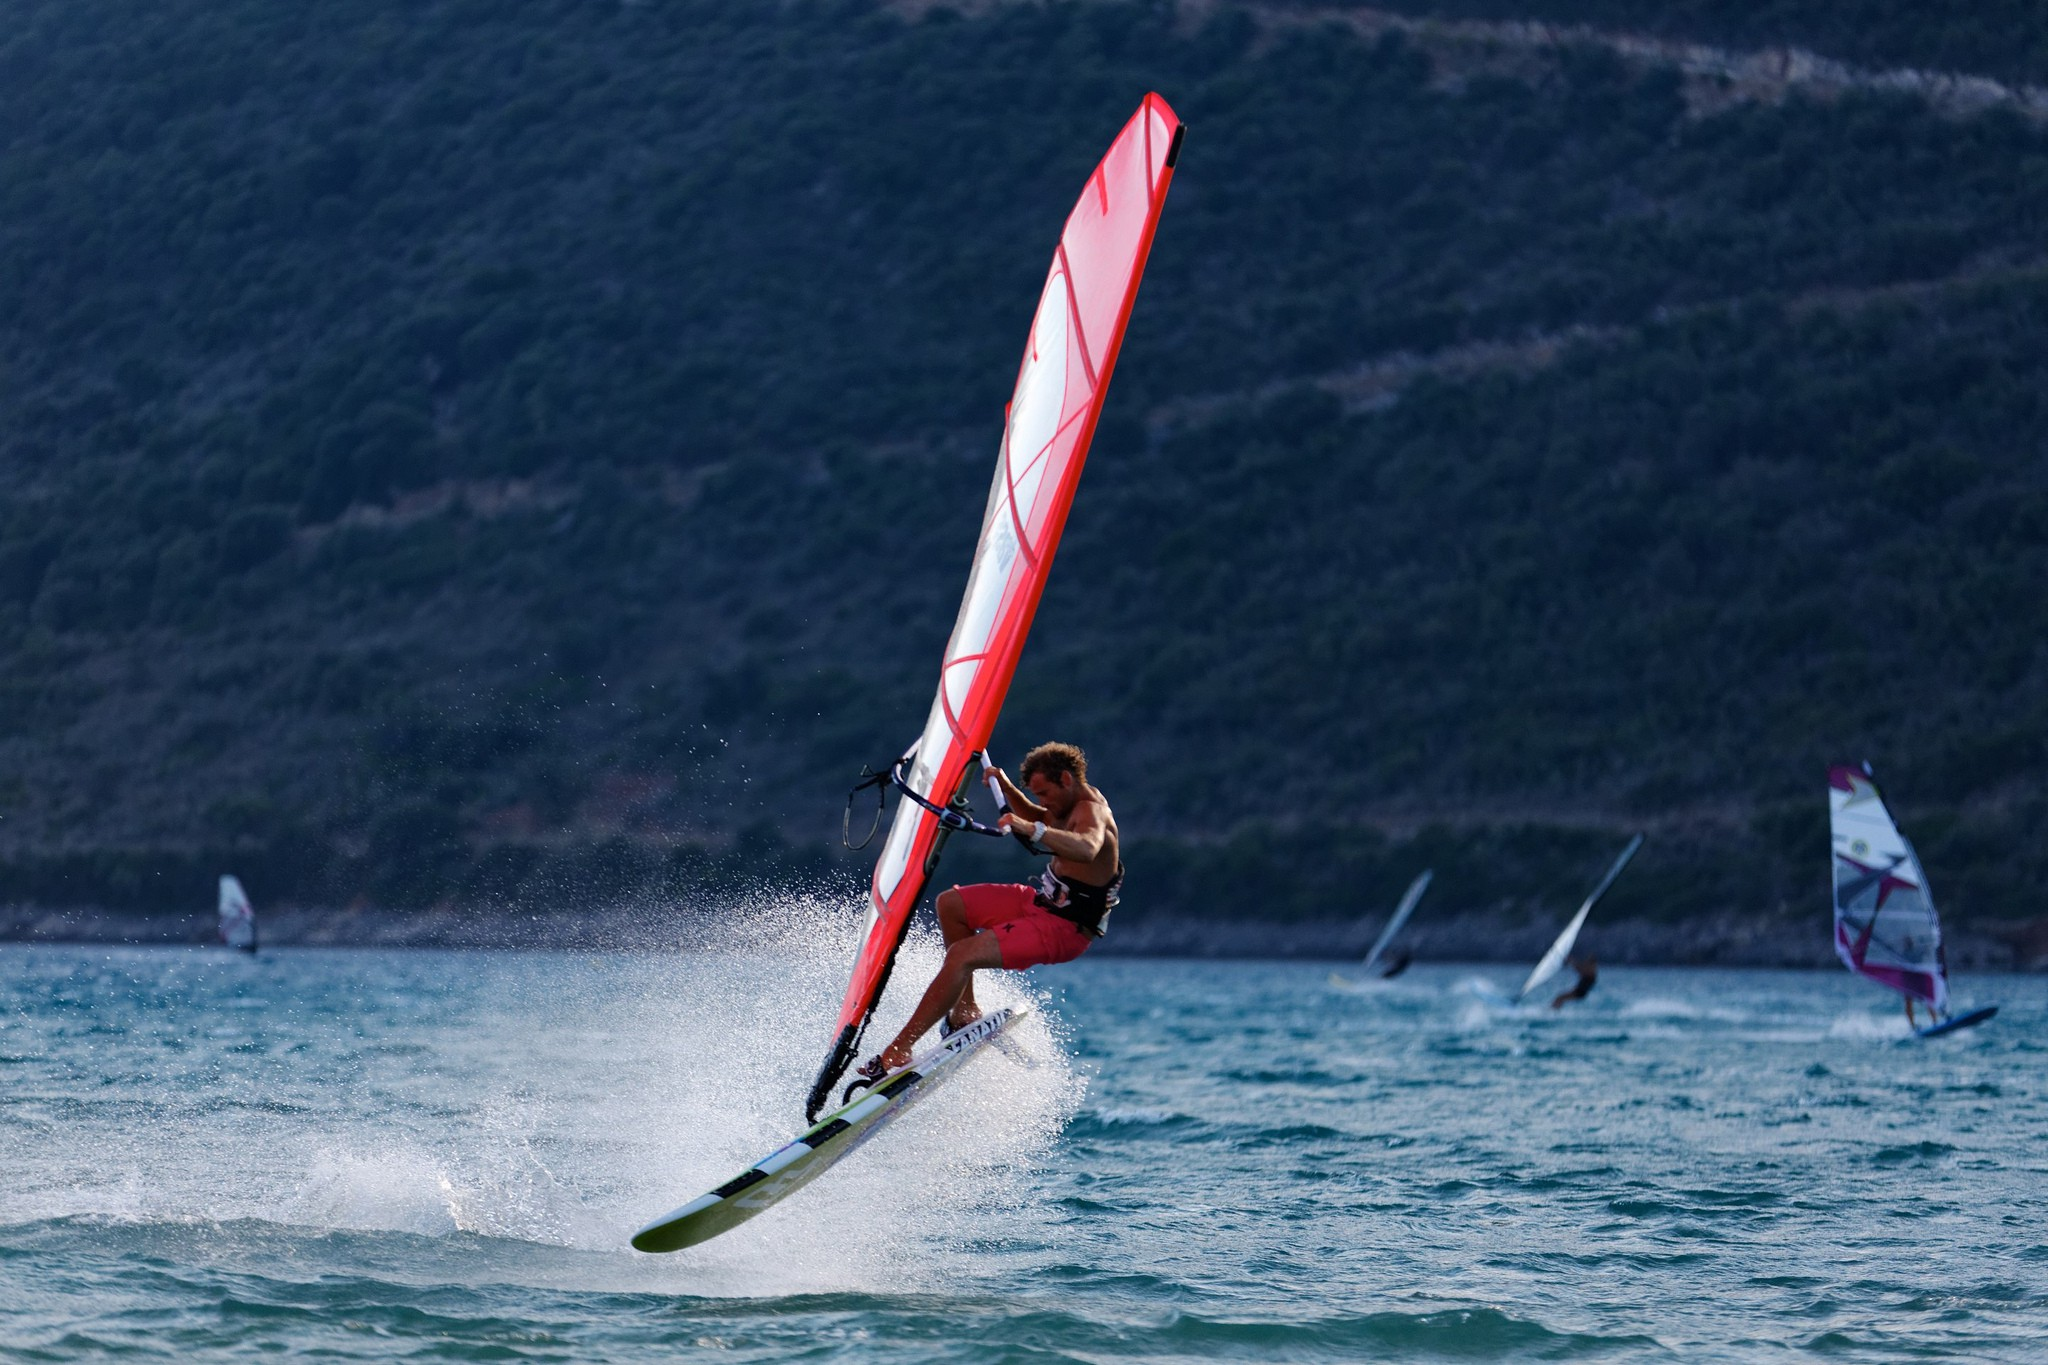 Windsurfing | © Alastair Campbell/Flickr